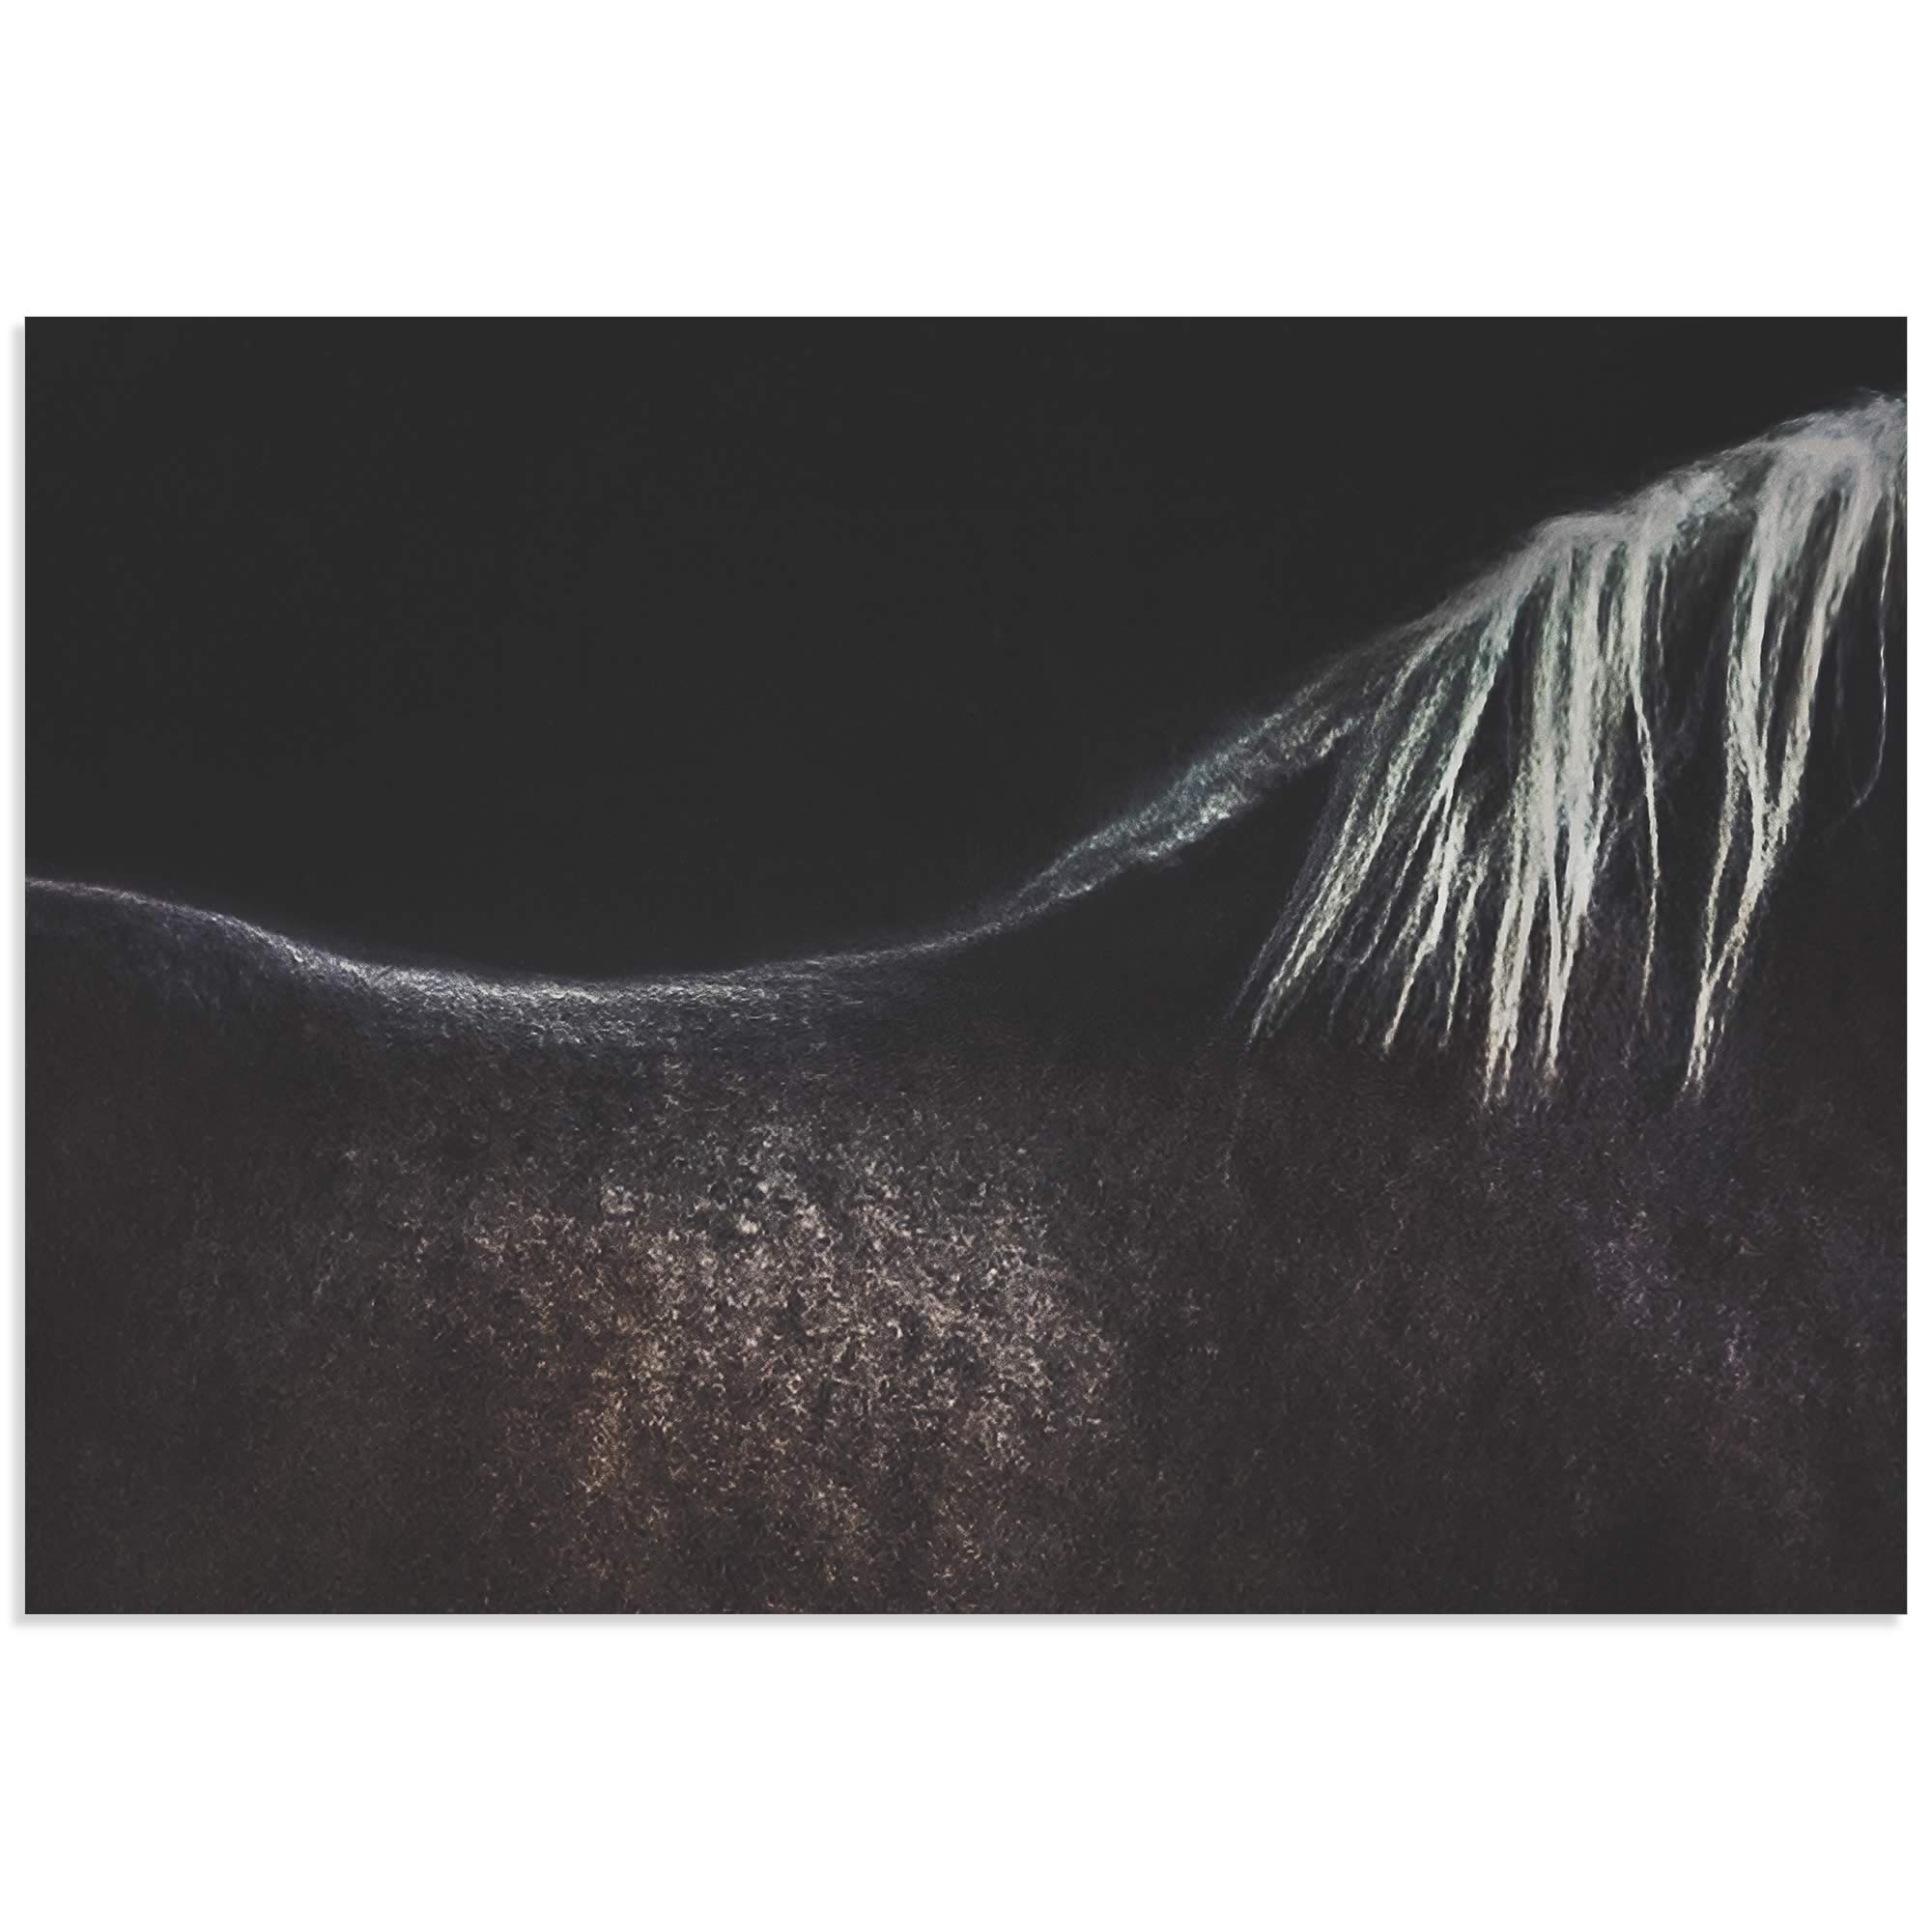 Naked Horse by Piet Flour - Horse Wall Art on Metal or Acrylic